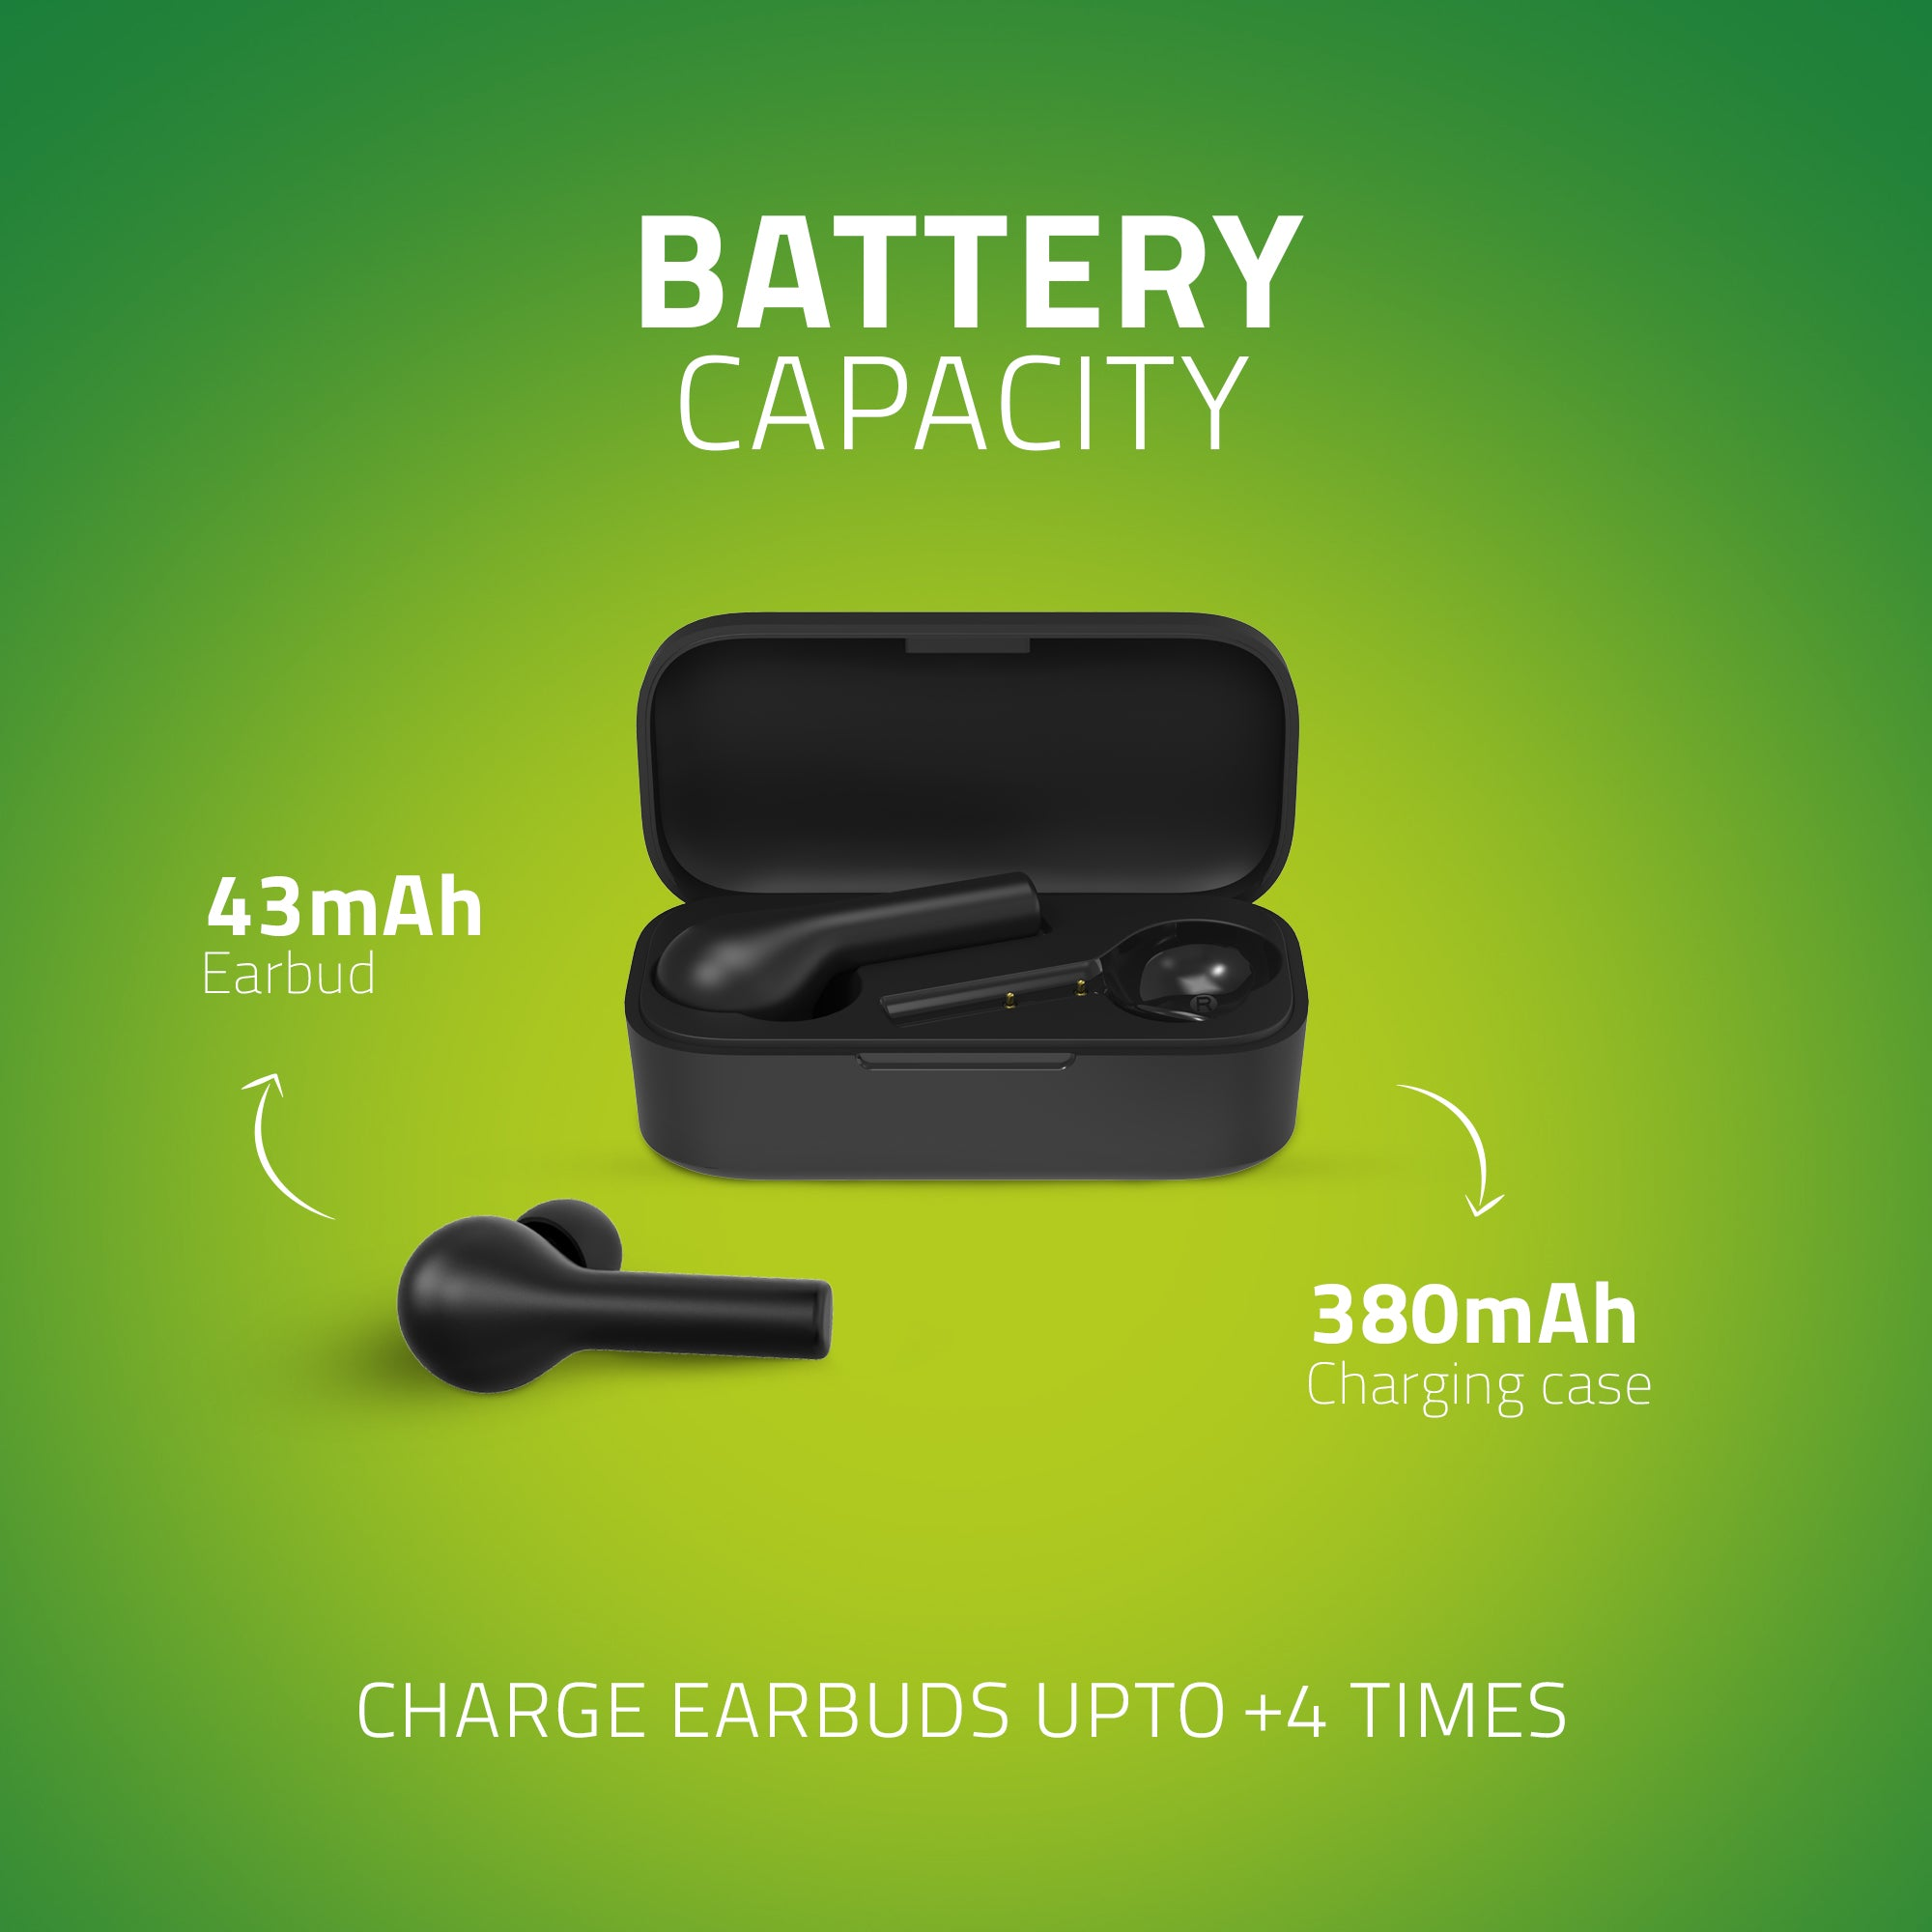 BE110M Artis TWS Earbuds - Battery Capacity